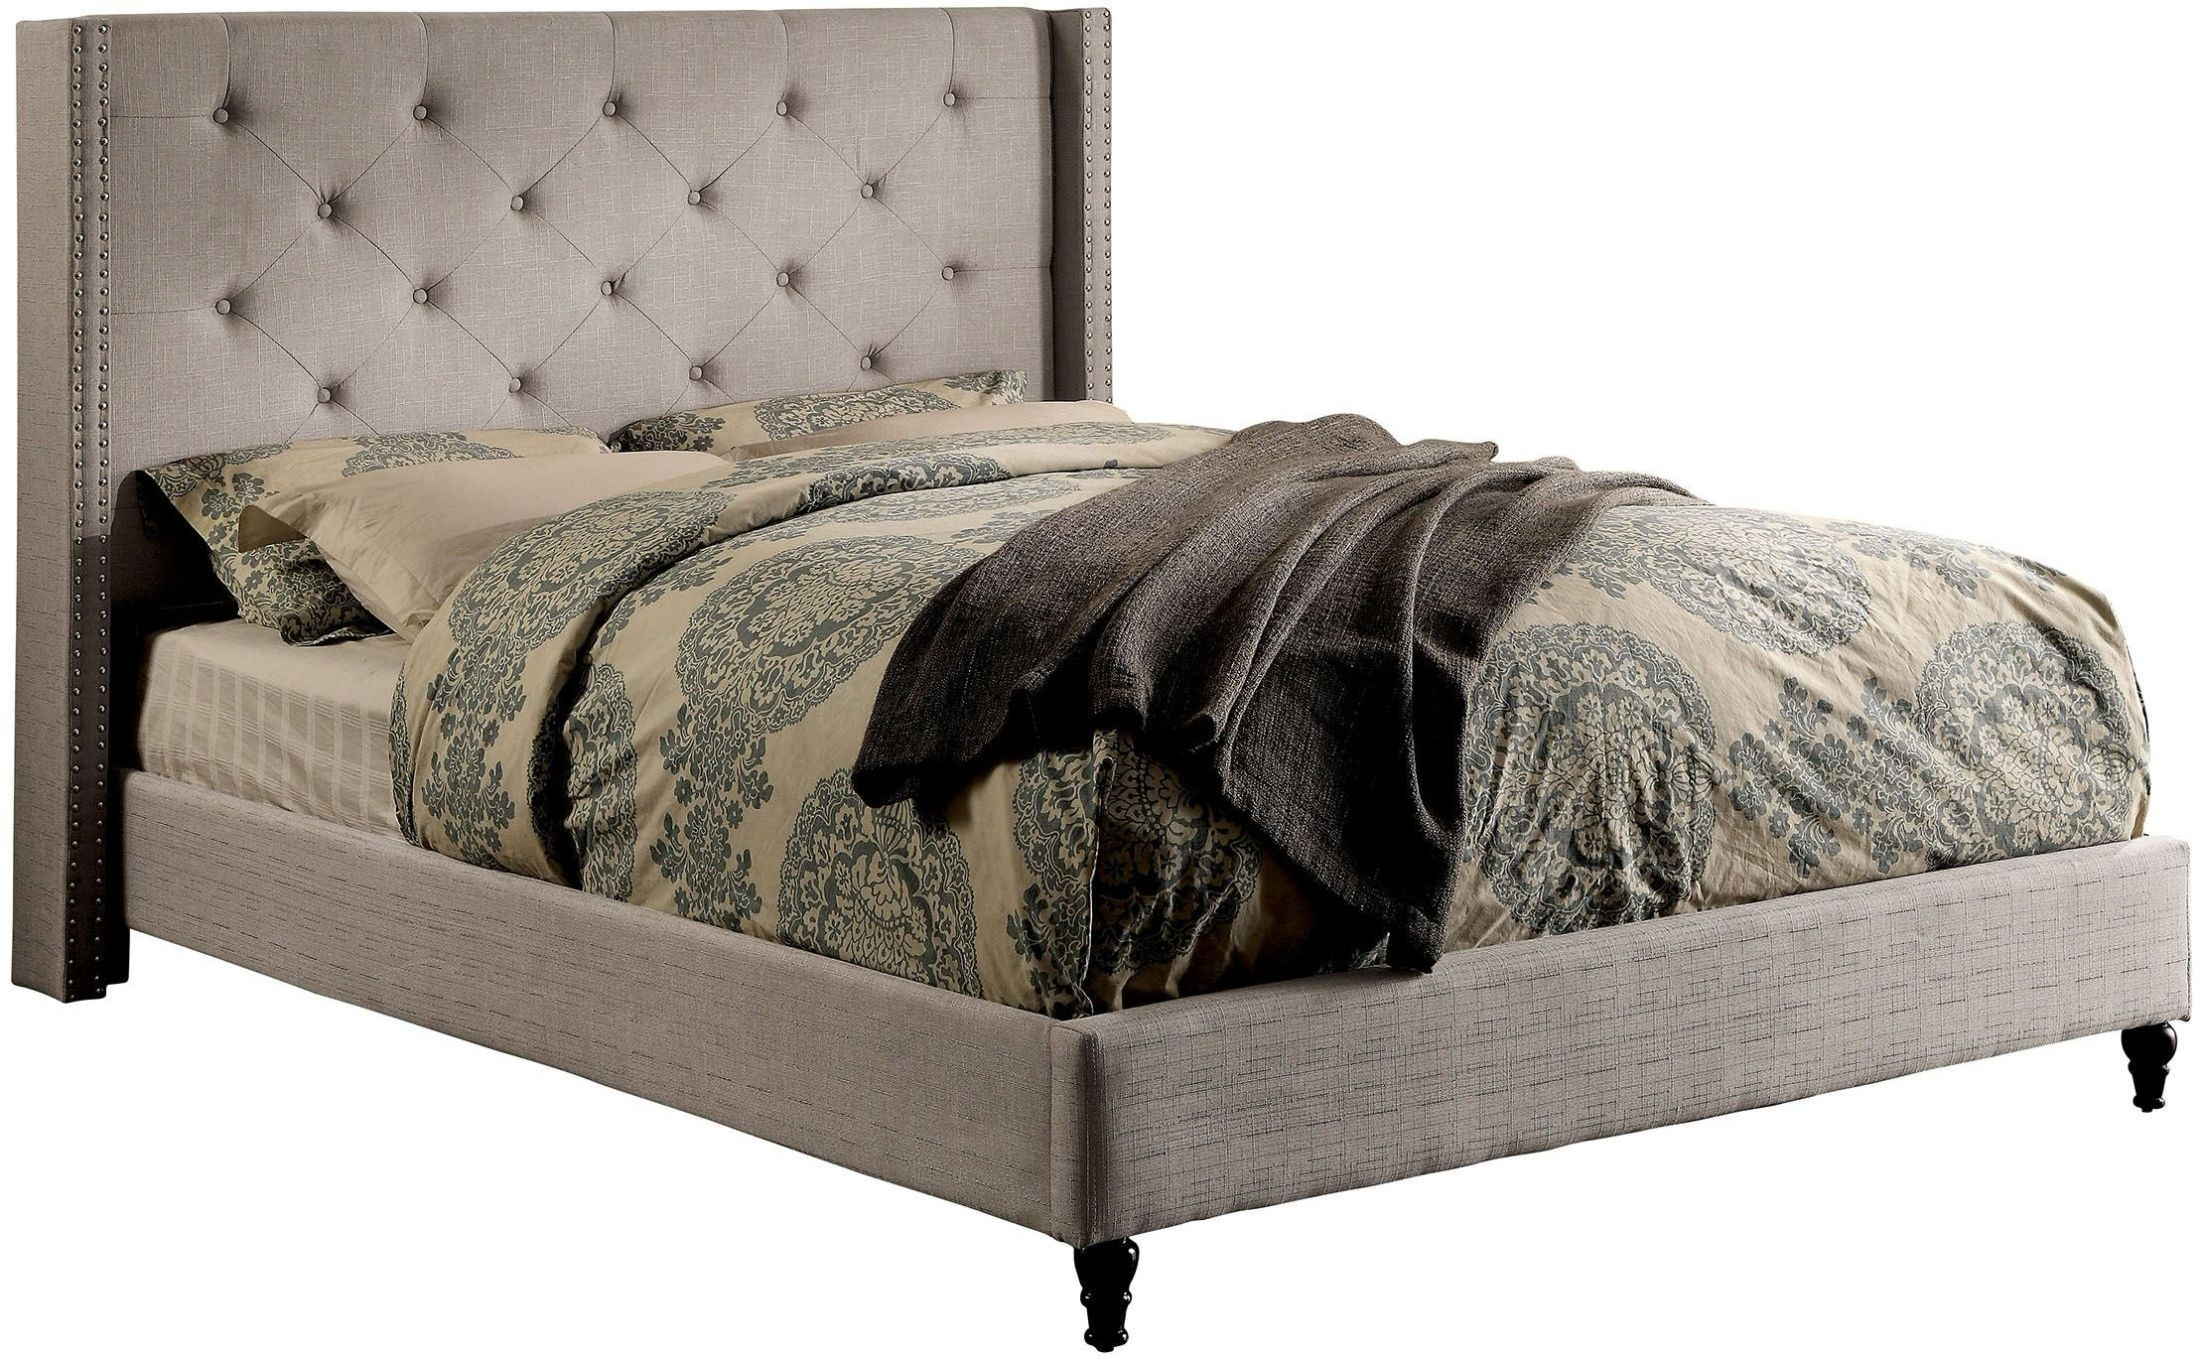 Anabelle Warm Gray Cal King Upholstered Platform Bed From